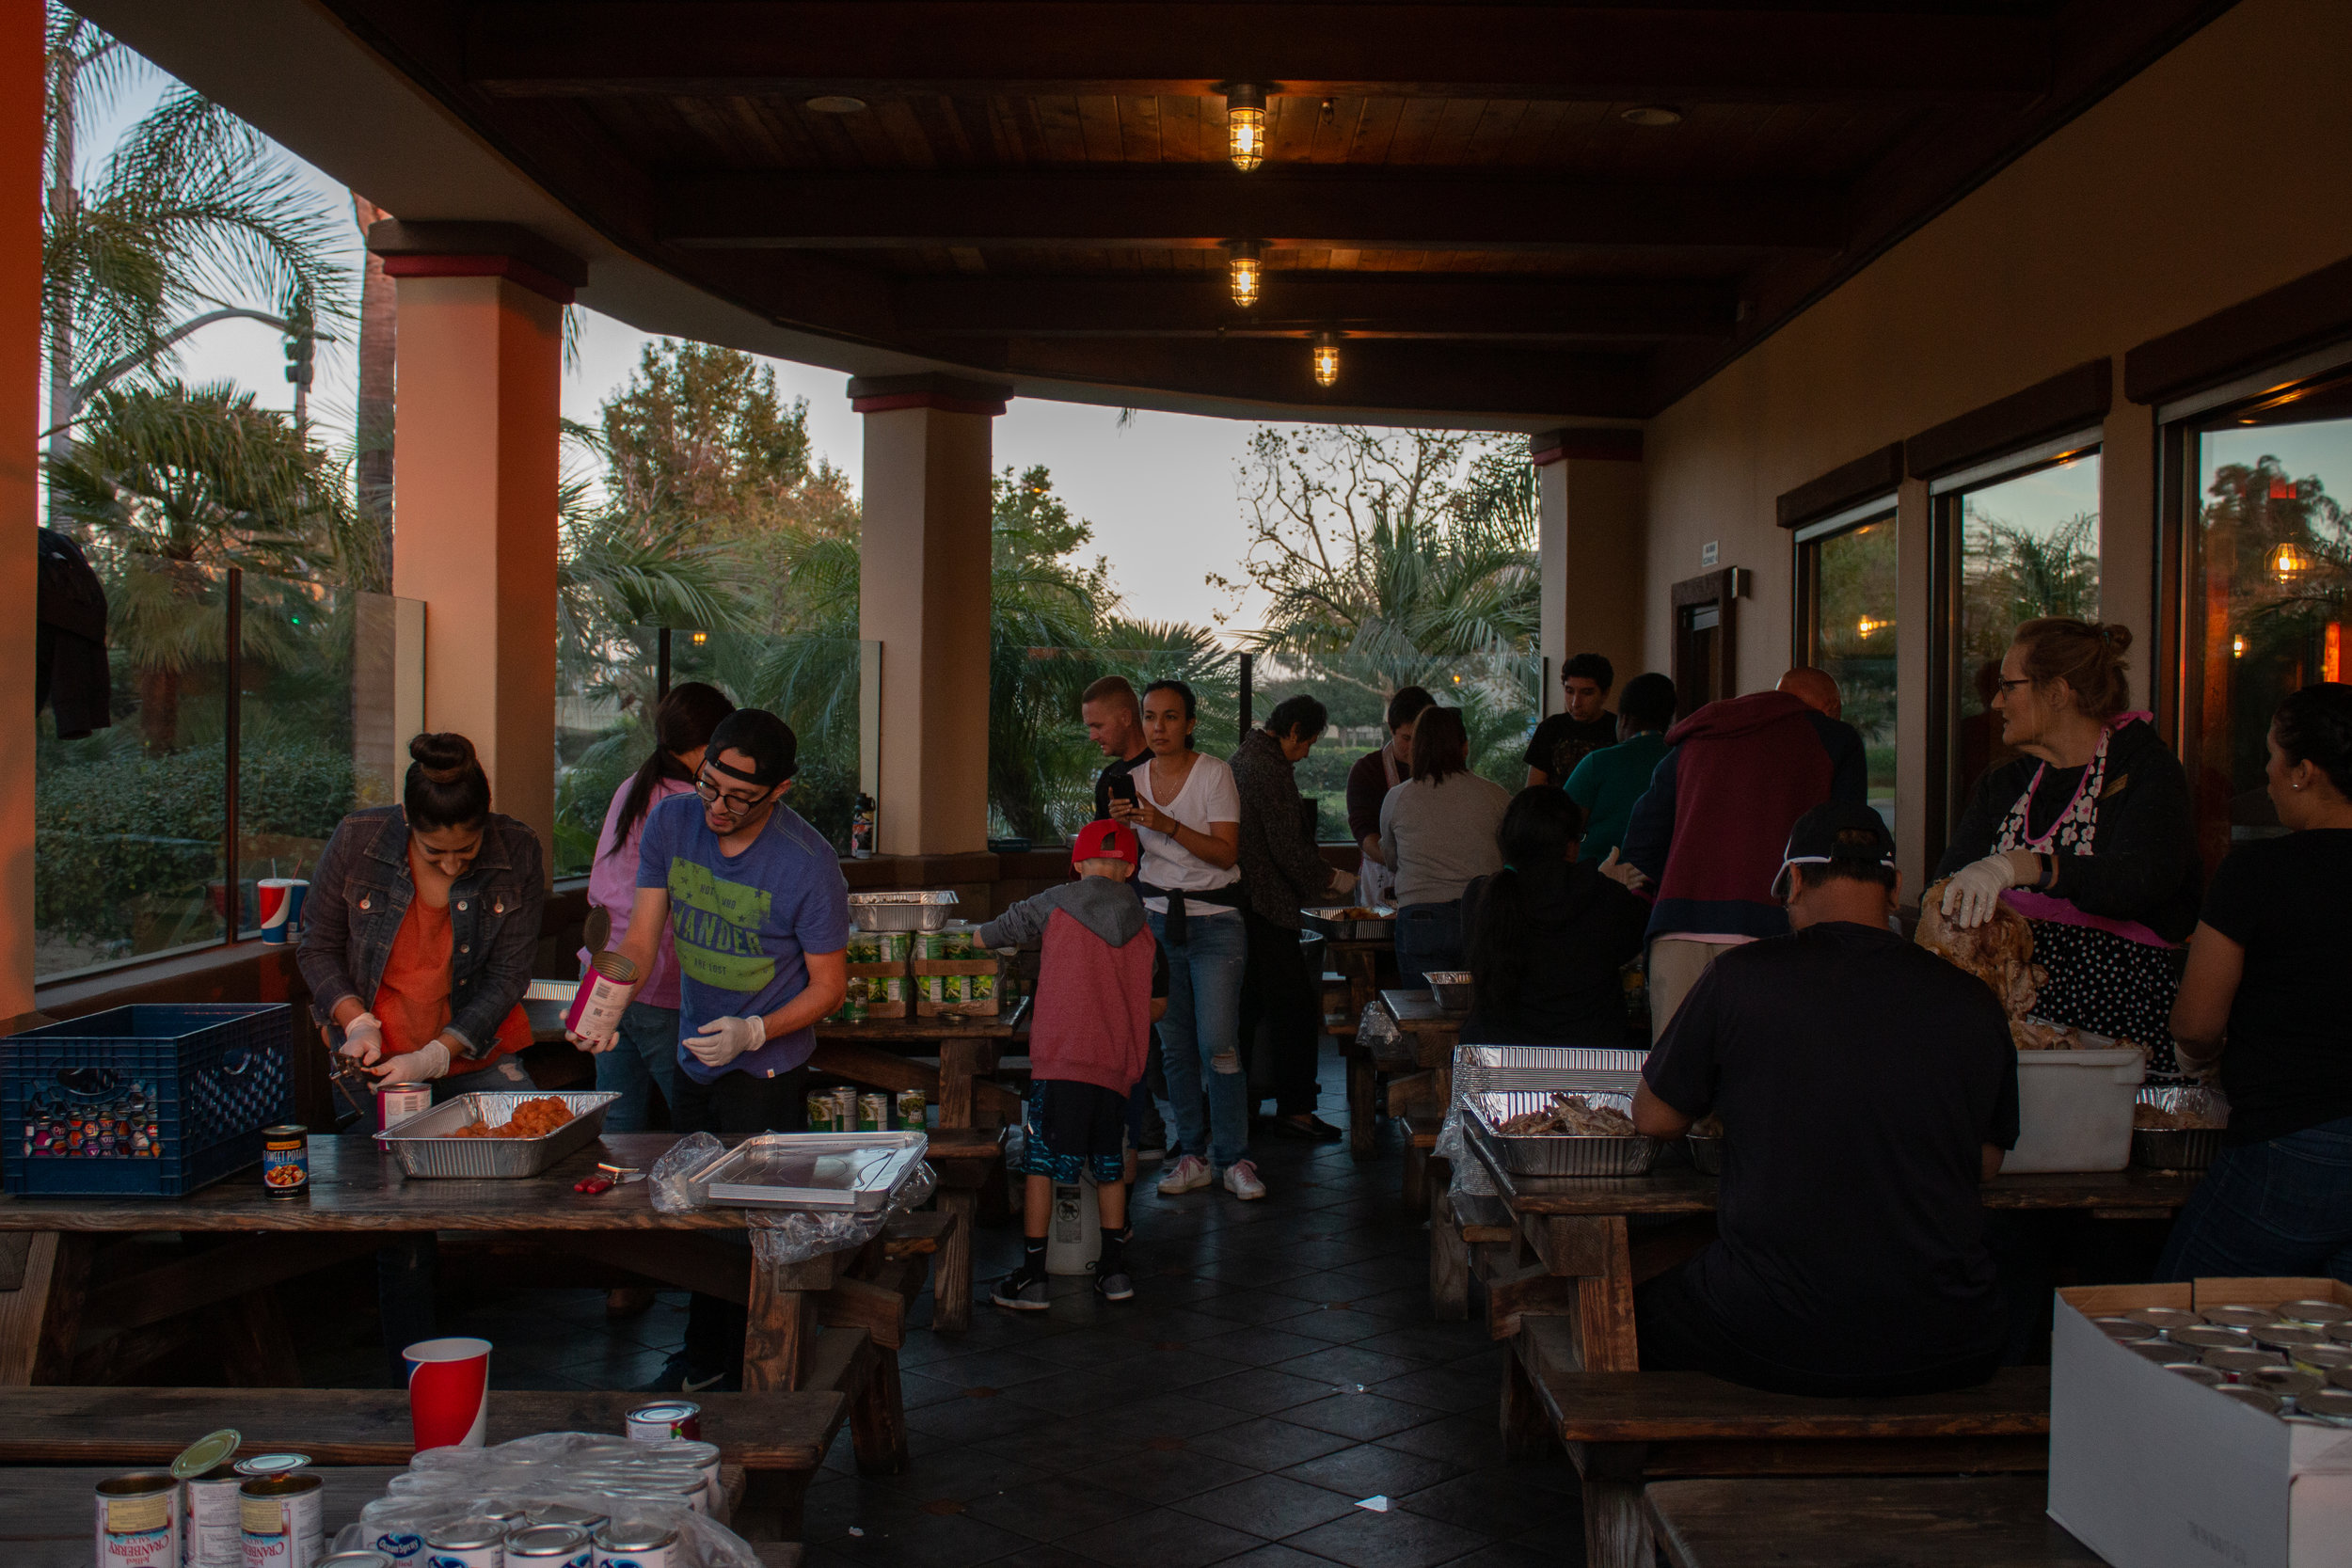 The community of Rancho Cucamonga preparing free meals for Chaffey College students. Photo Credit: Raylene Camerano